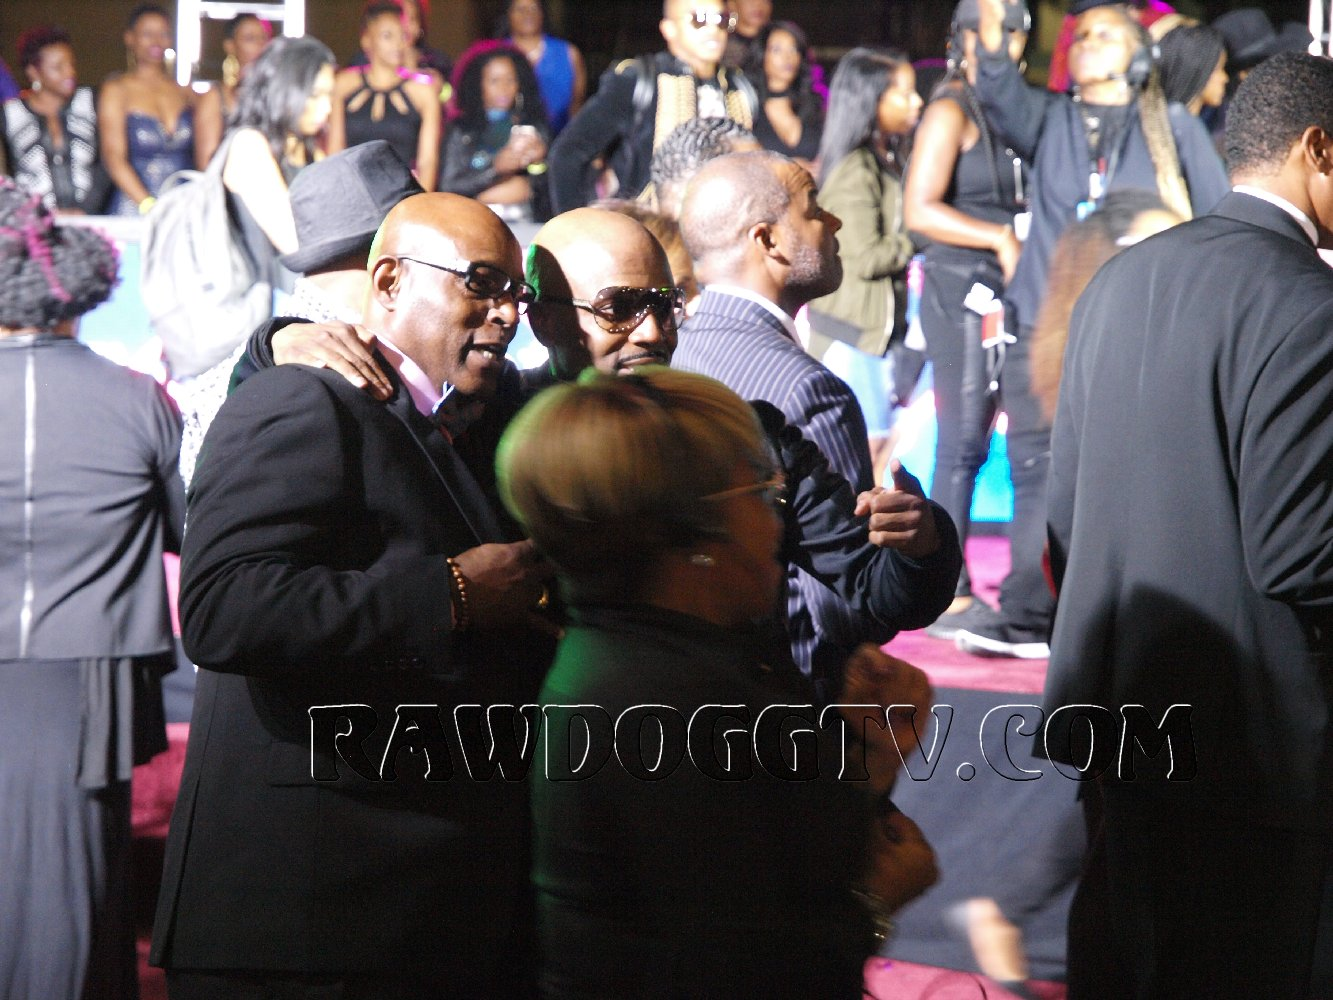 soul-train-music-awards-2016-photos-air-date-nov-27th-bet-centric-pr-mobilewire-305-490-2182-33